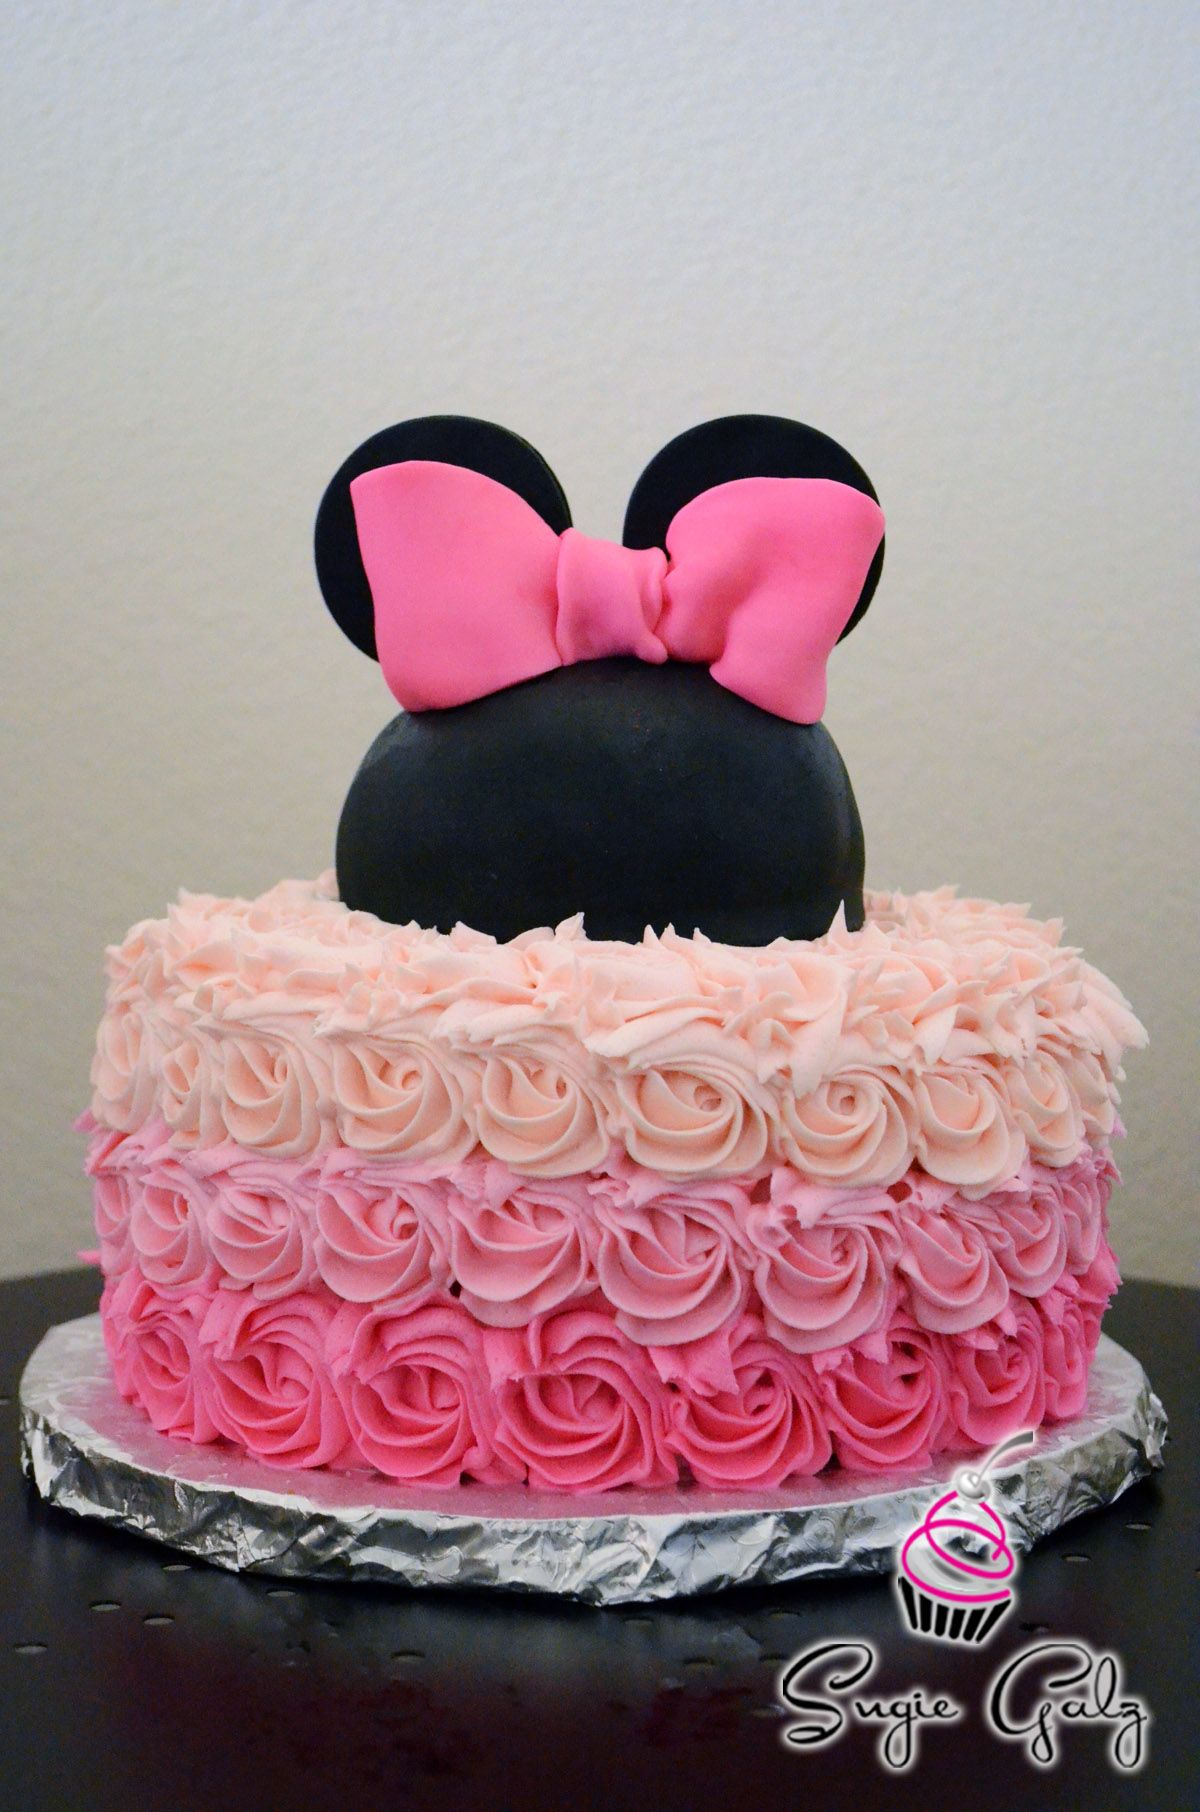 Pretty Pink Ombre Buttercream Minnie Mouse Birthday Cake By Sugie Galz In Austin Texas